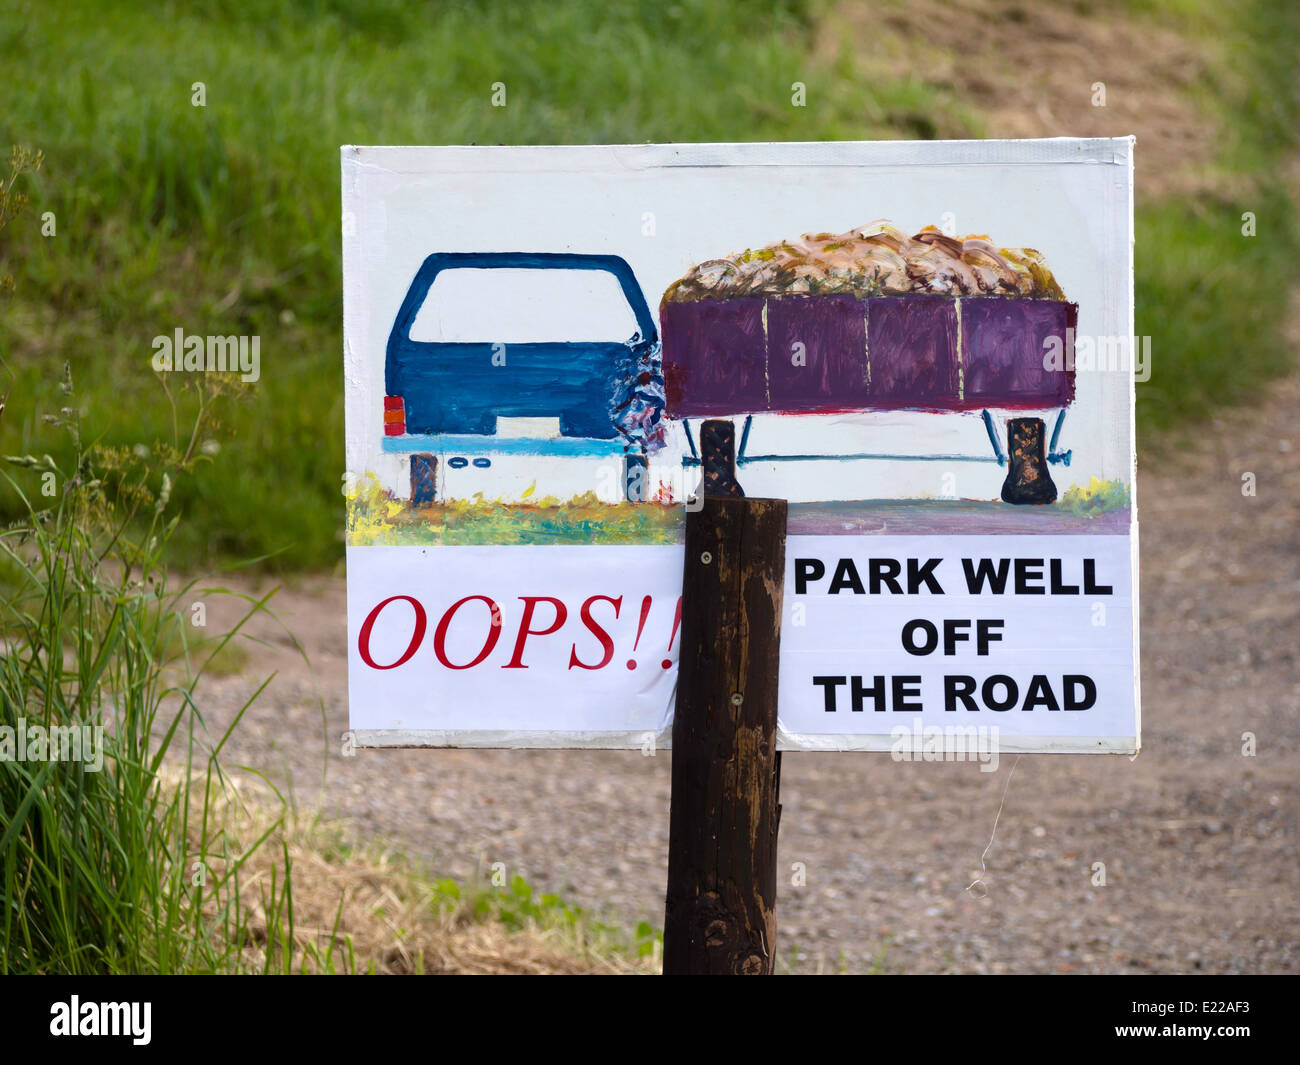 Warning sign advising drivers to park well off the road to avoid damage by passing wide agricultural vehicles - Stock Image